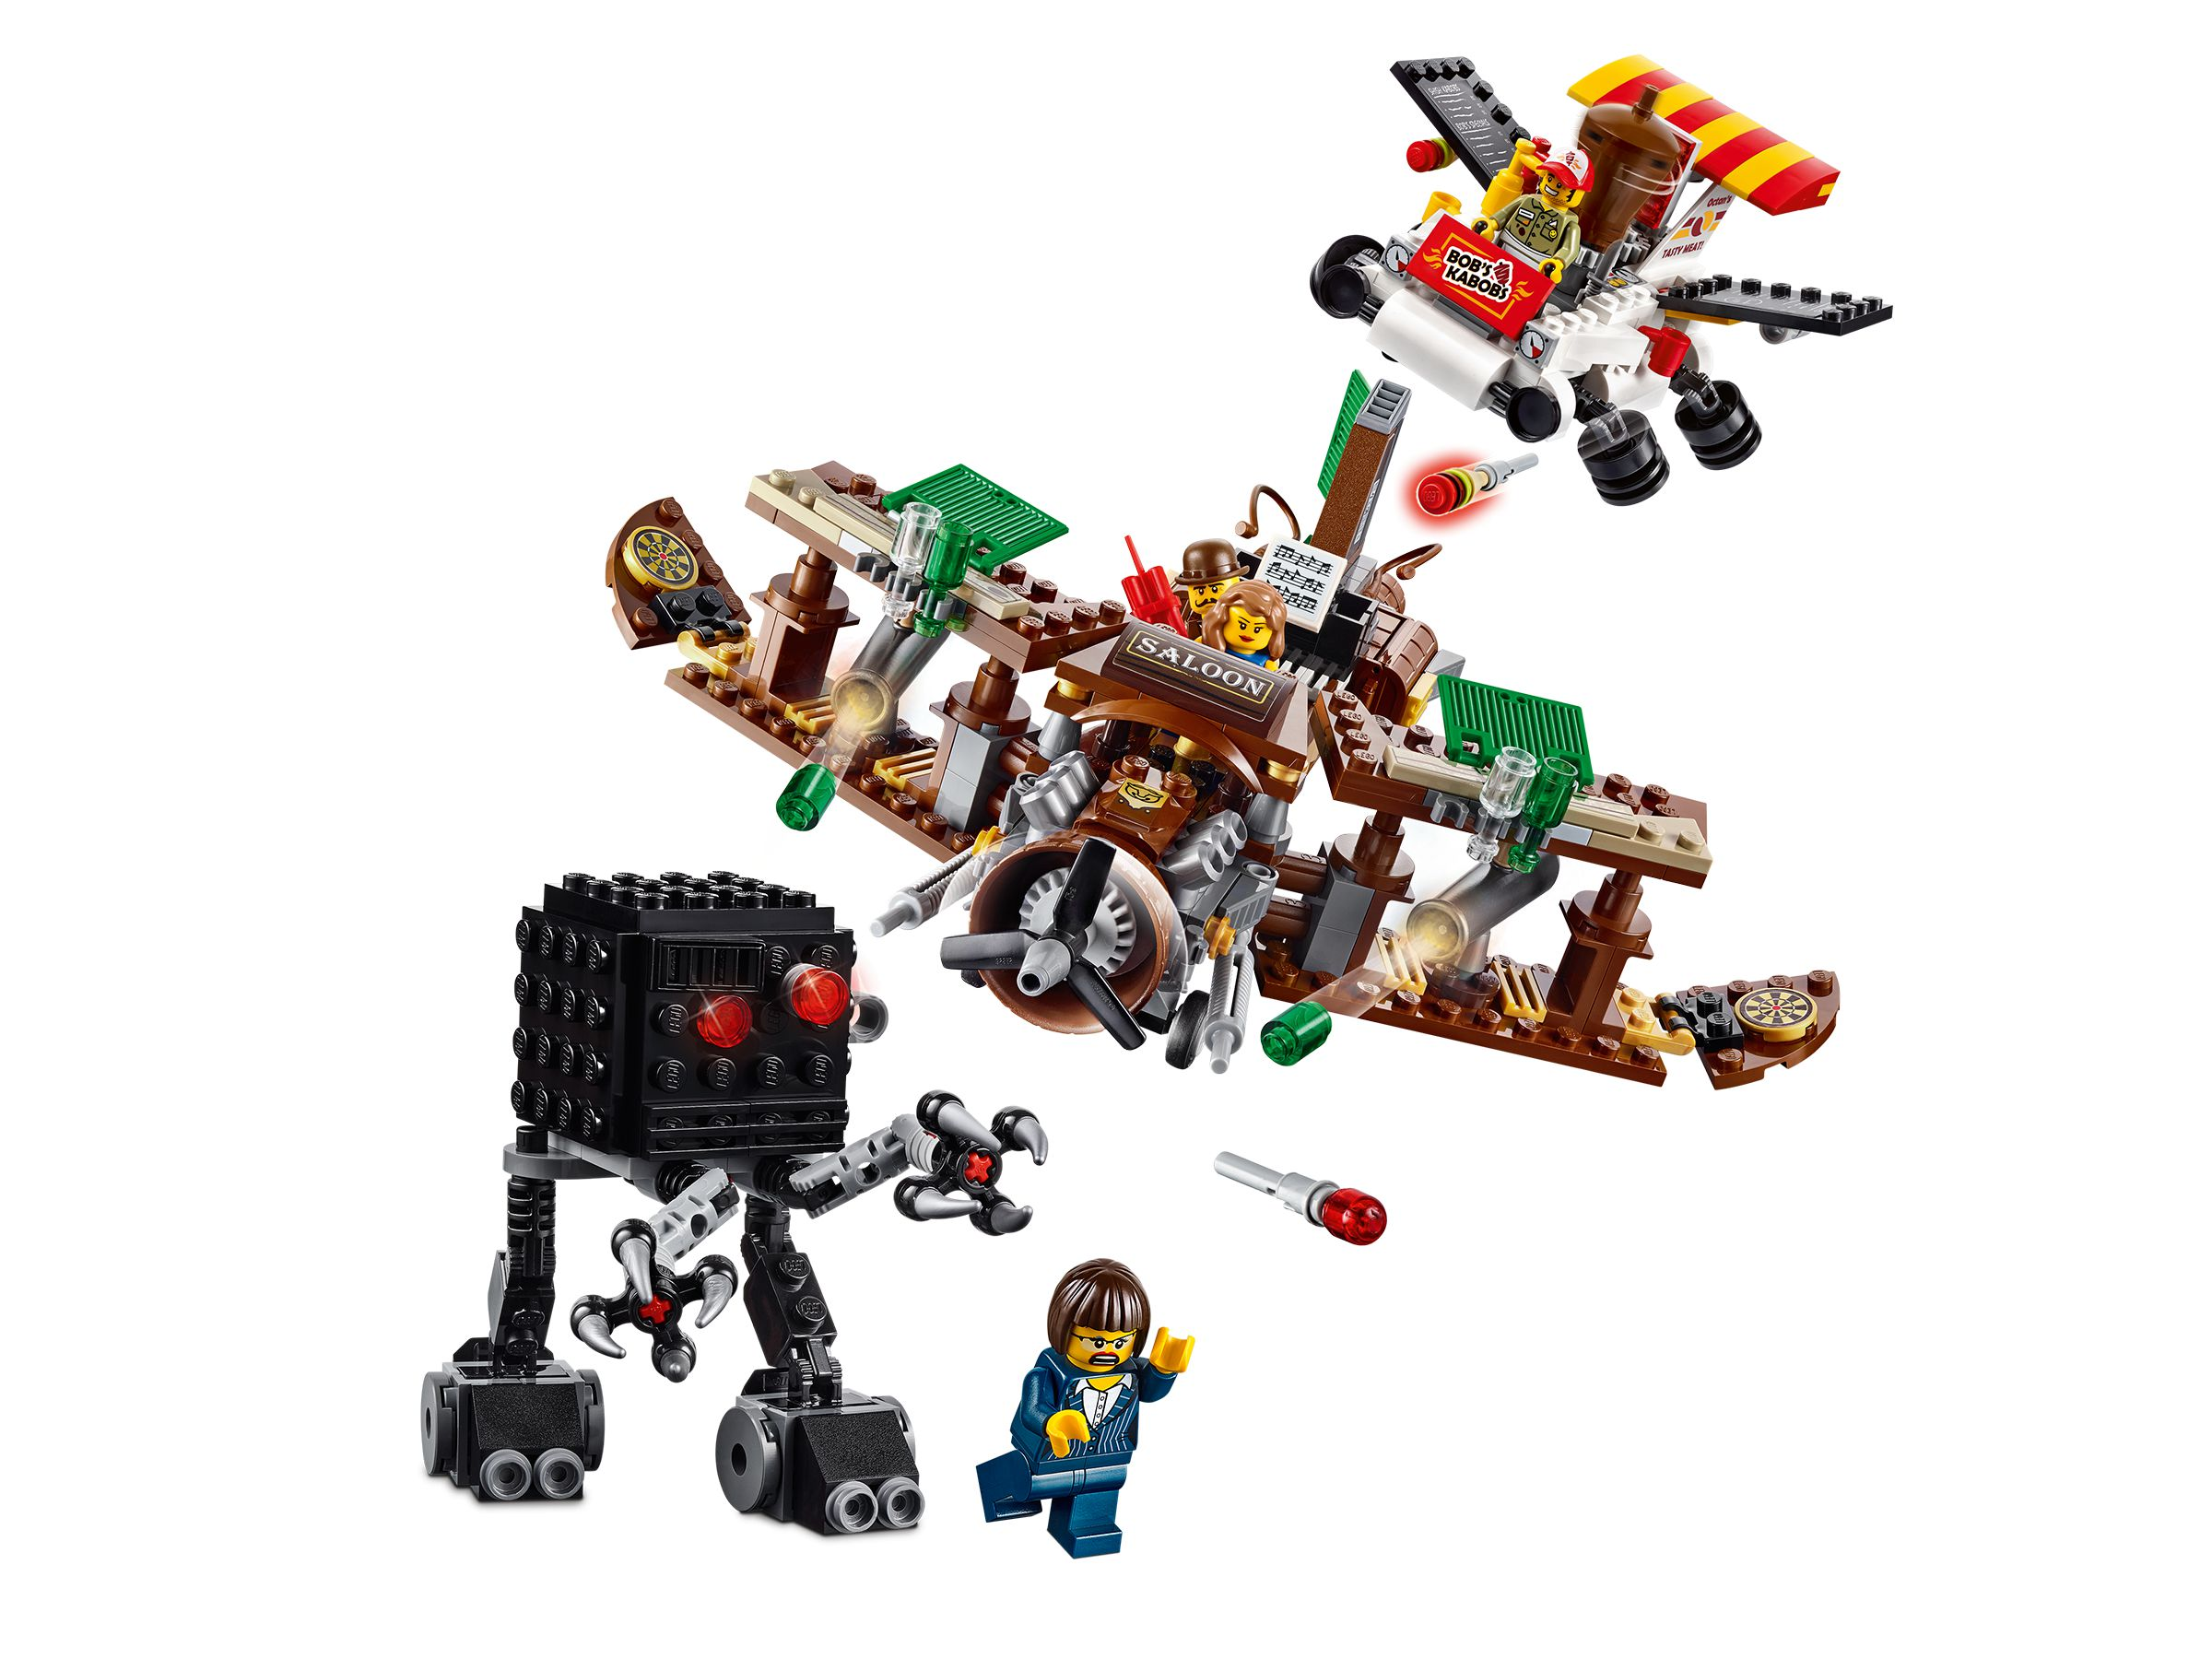 LEGO The LEGO Movie 70812 Kreative Flug Attacke LEGO_70812.jpg